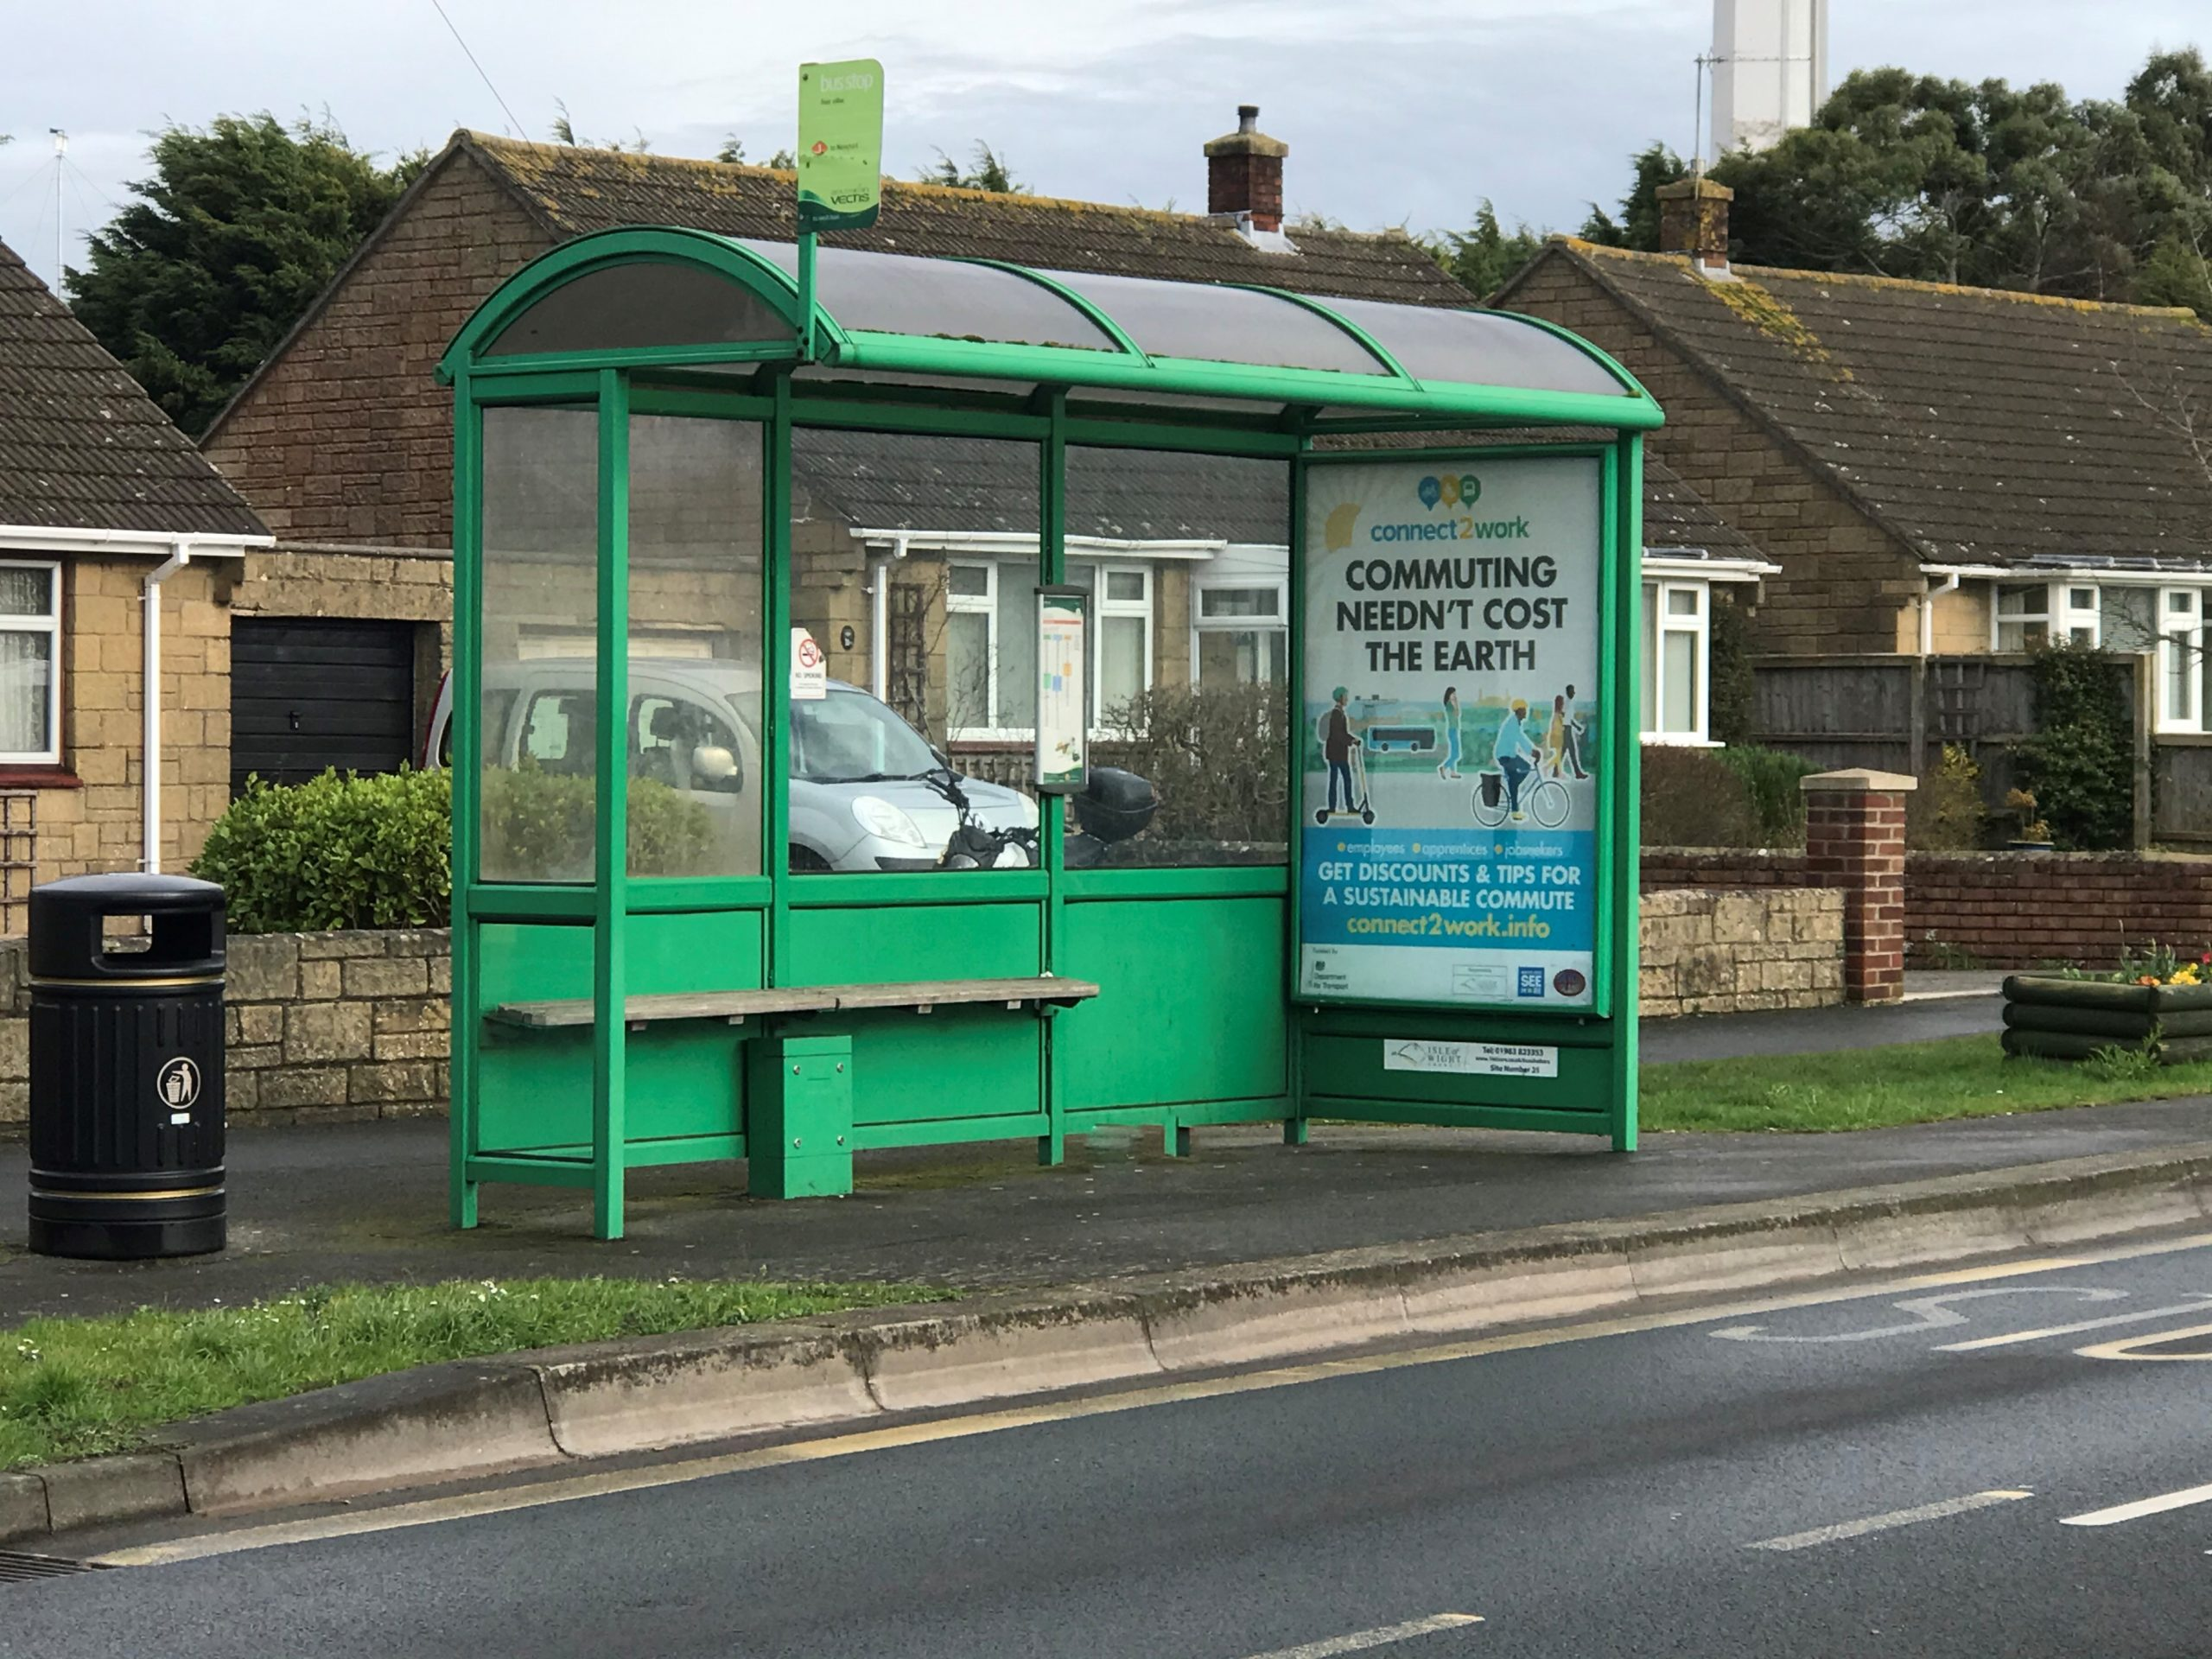 Photo showing a bus shelter at the side of the road in Cowes